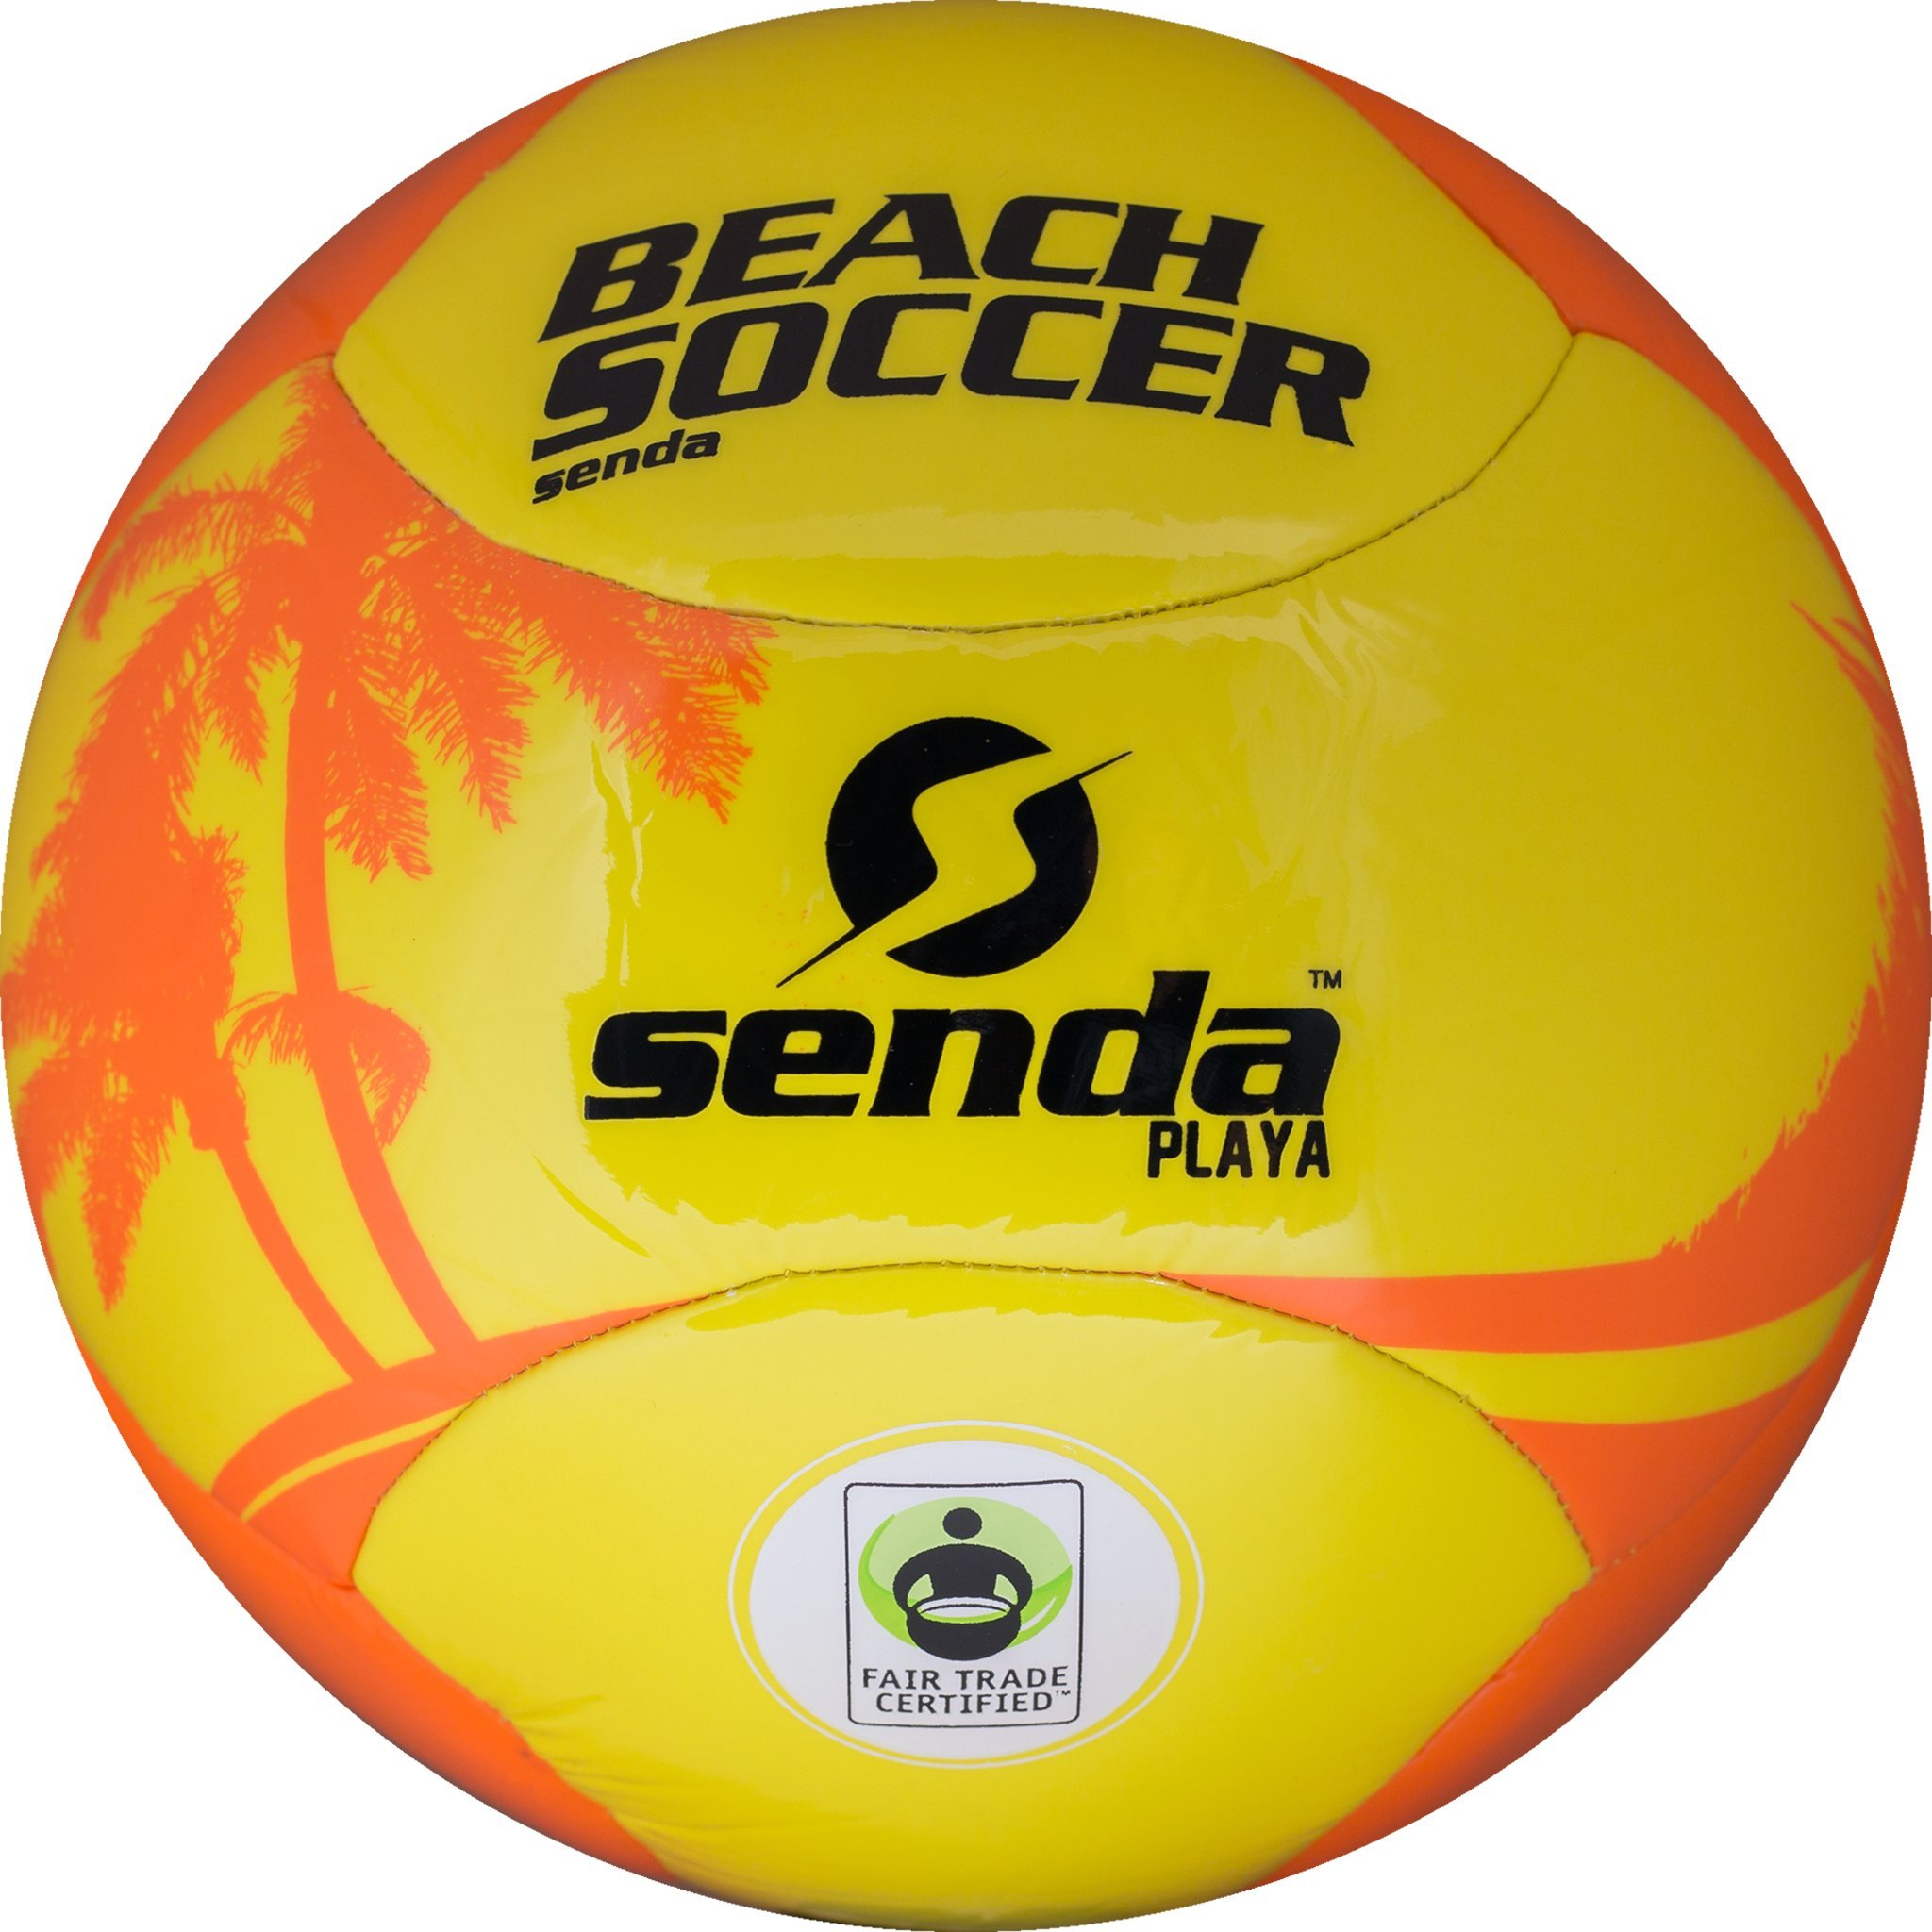 Senda Playa Beach Soccer Ball, Orange/Yellow, Size 4 (Ages 8-12)